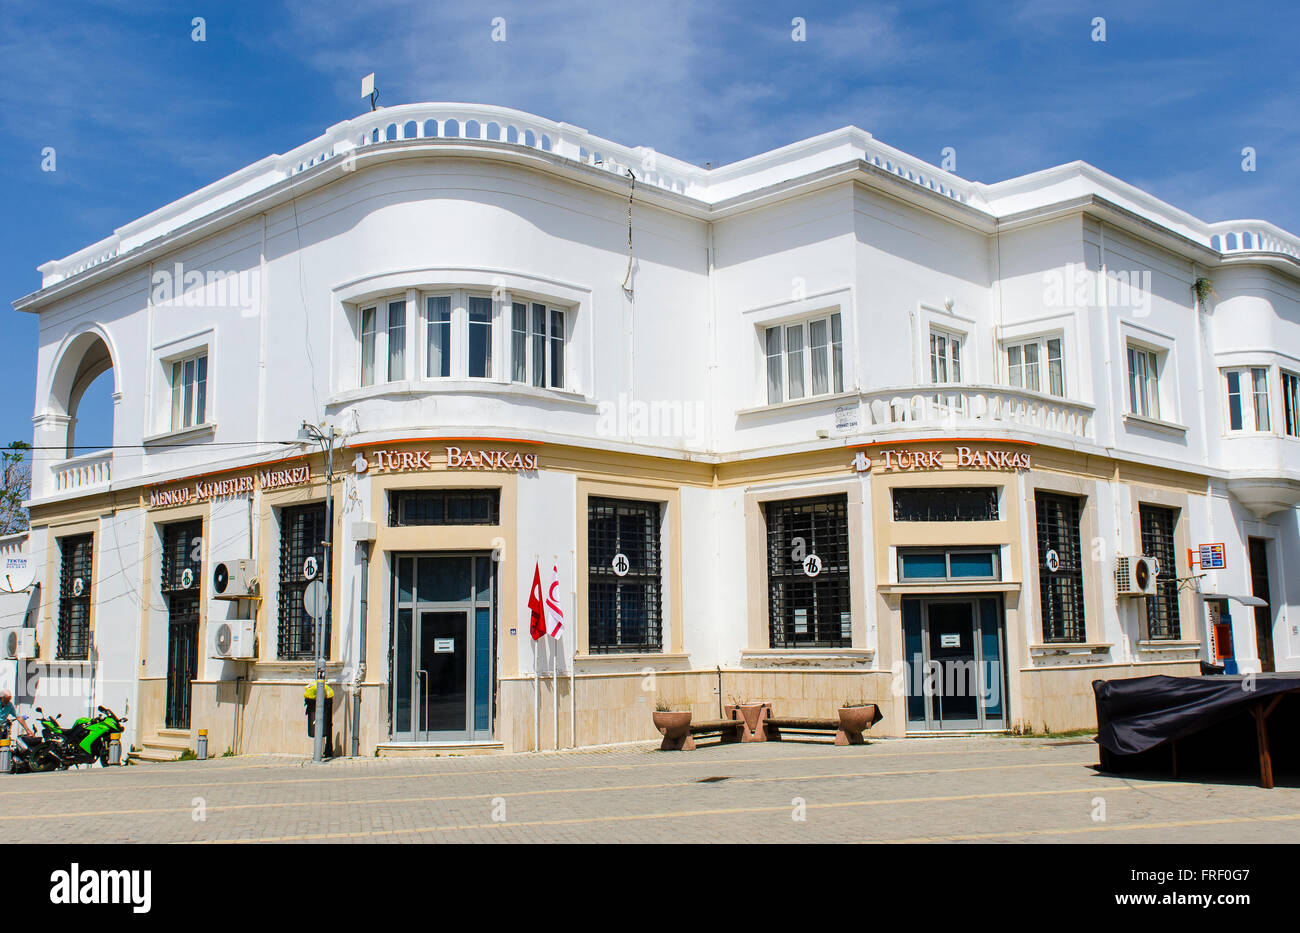 Branch of the Turkish Bank Turk Bankasi in the city of Kyrenia, Northern Cyprus. - Stock Image